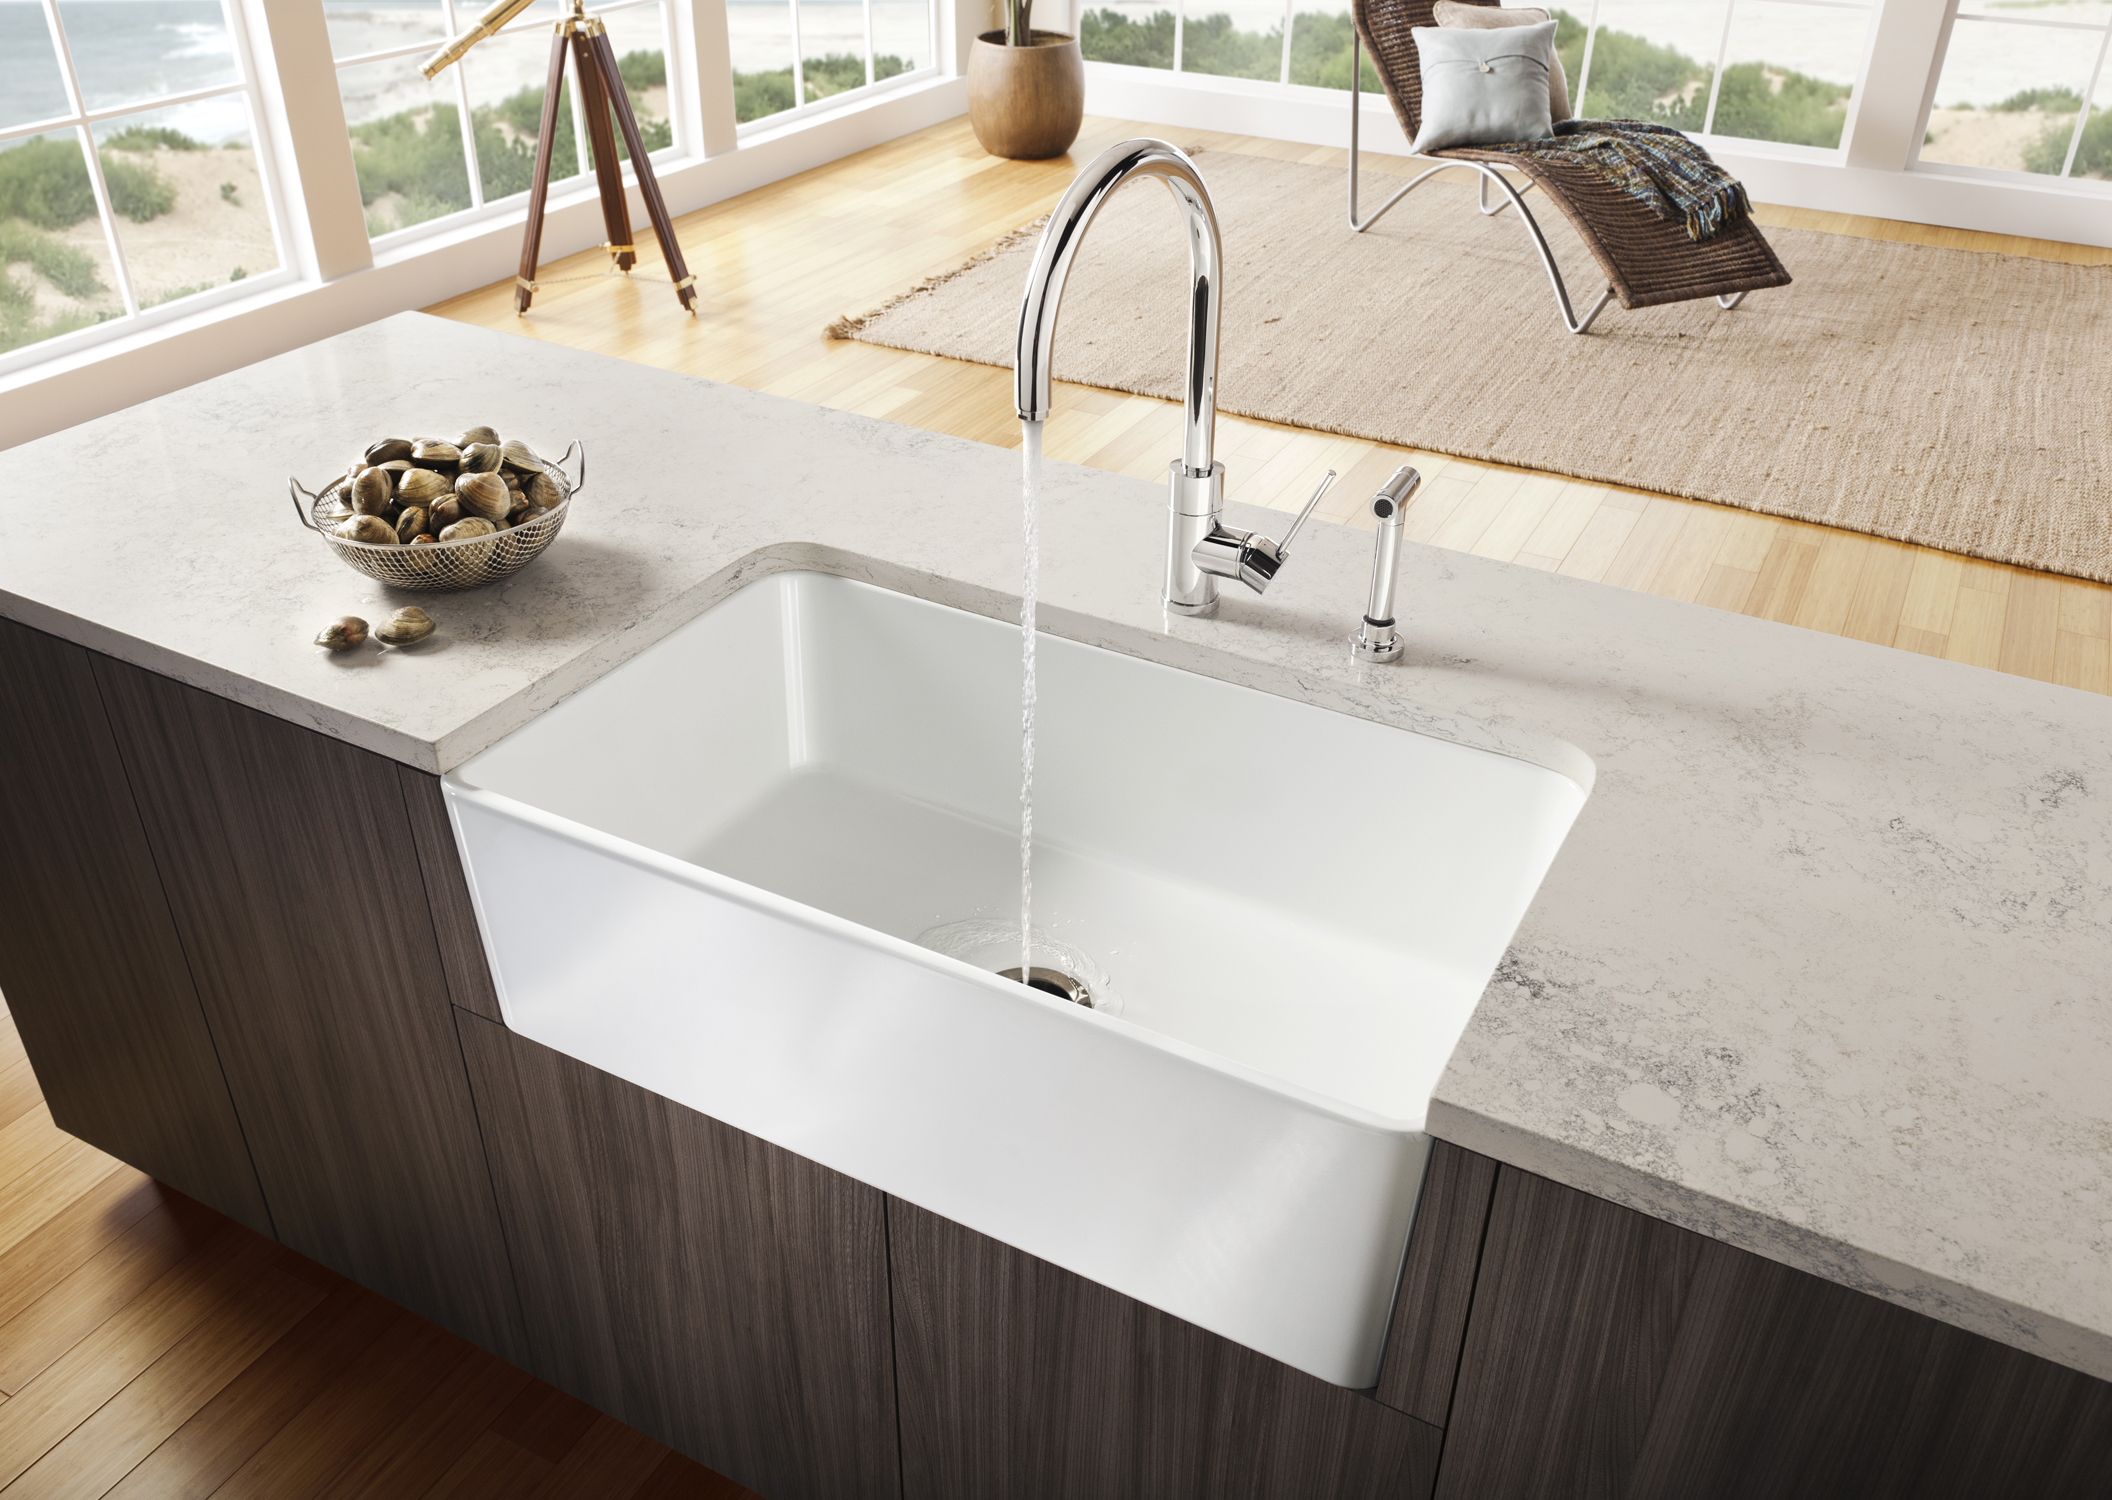 BLANCO Introduces the CERANA™ Apron Front Kitchen Sink – Reimagining ...